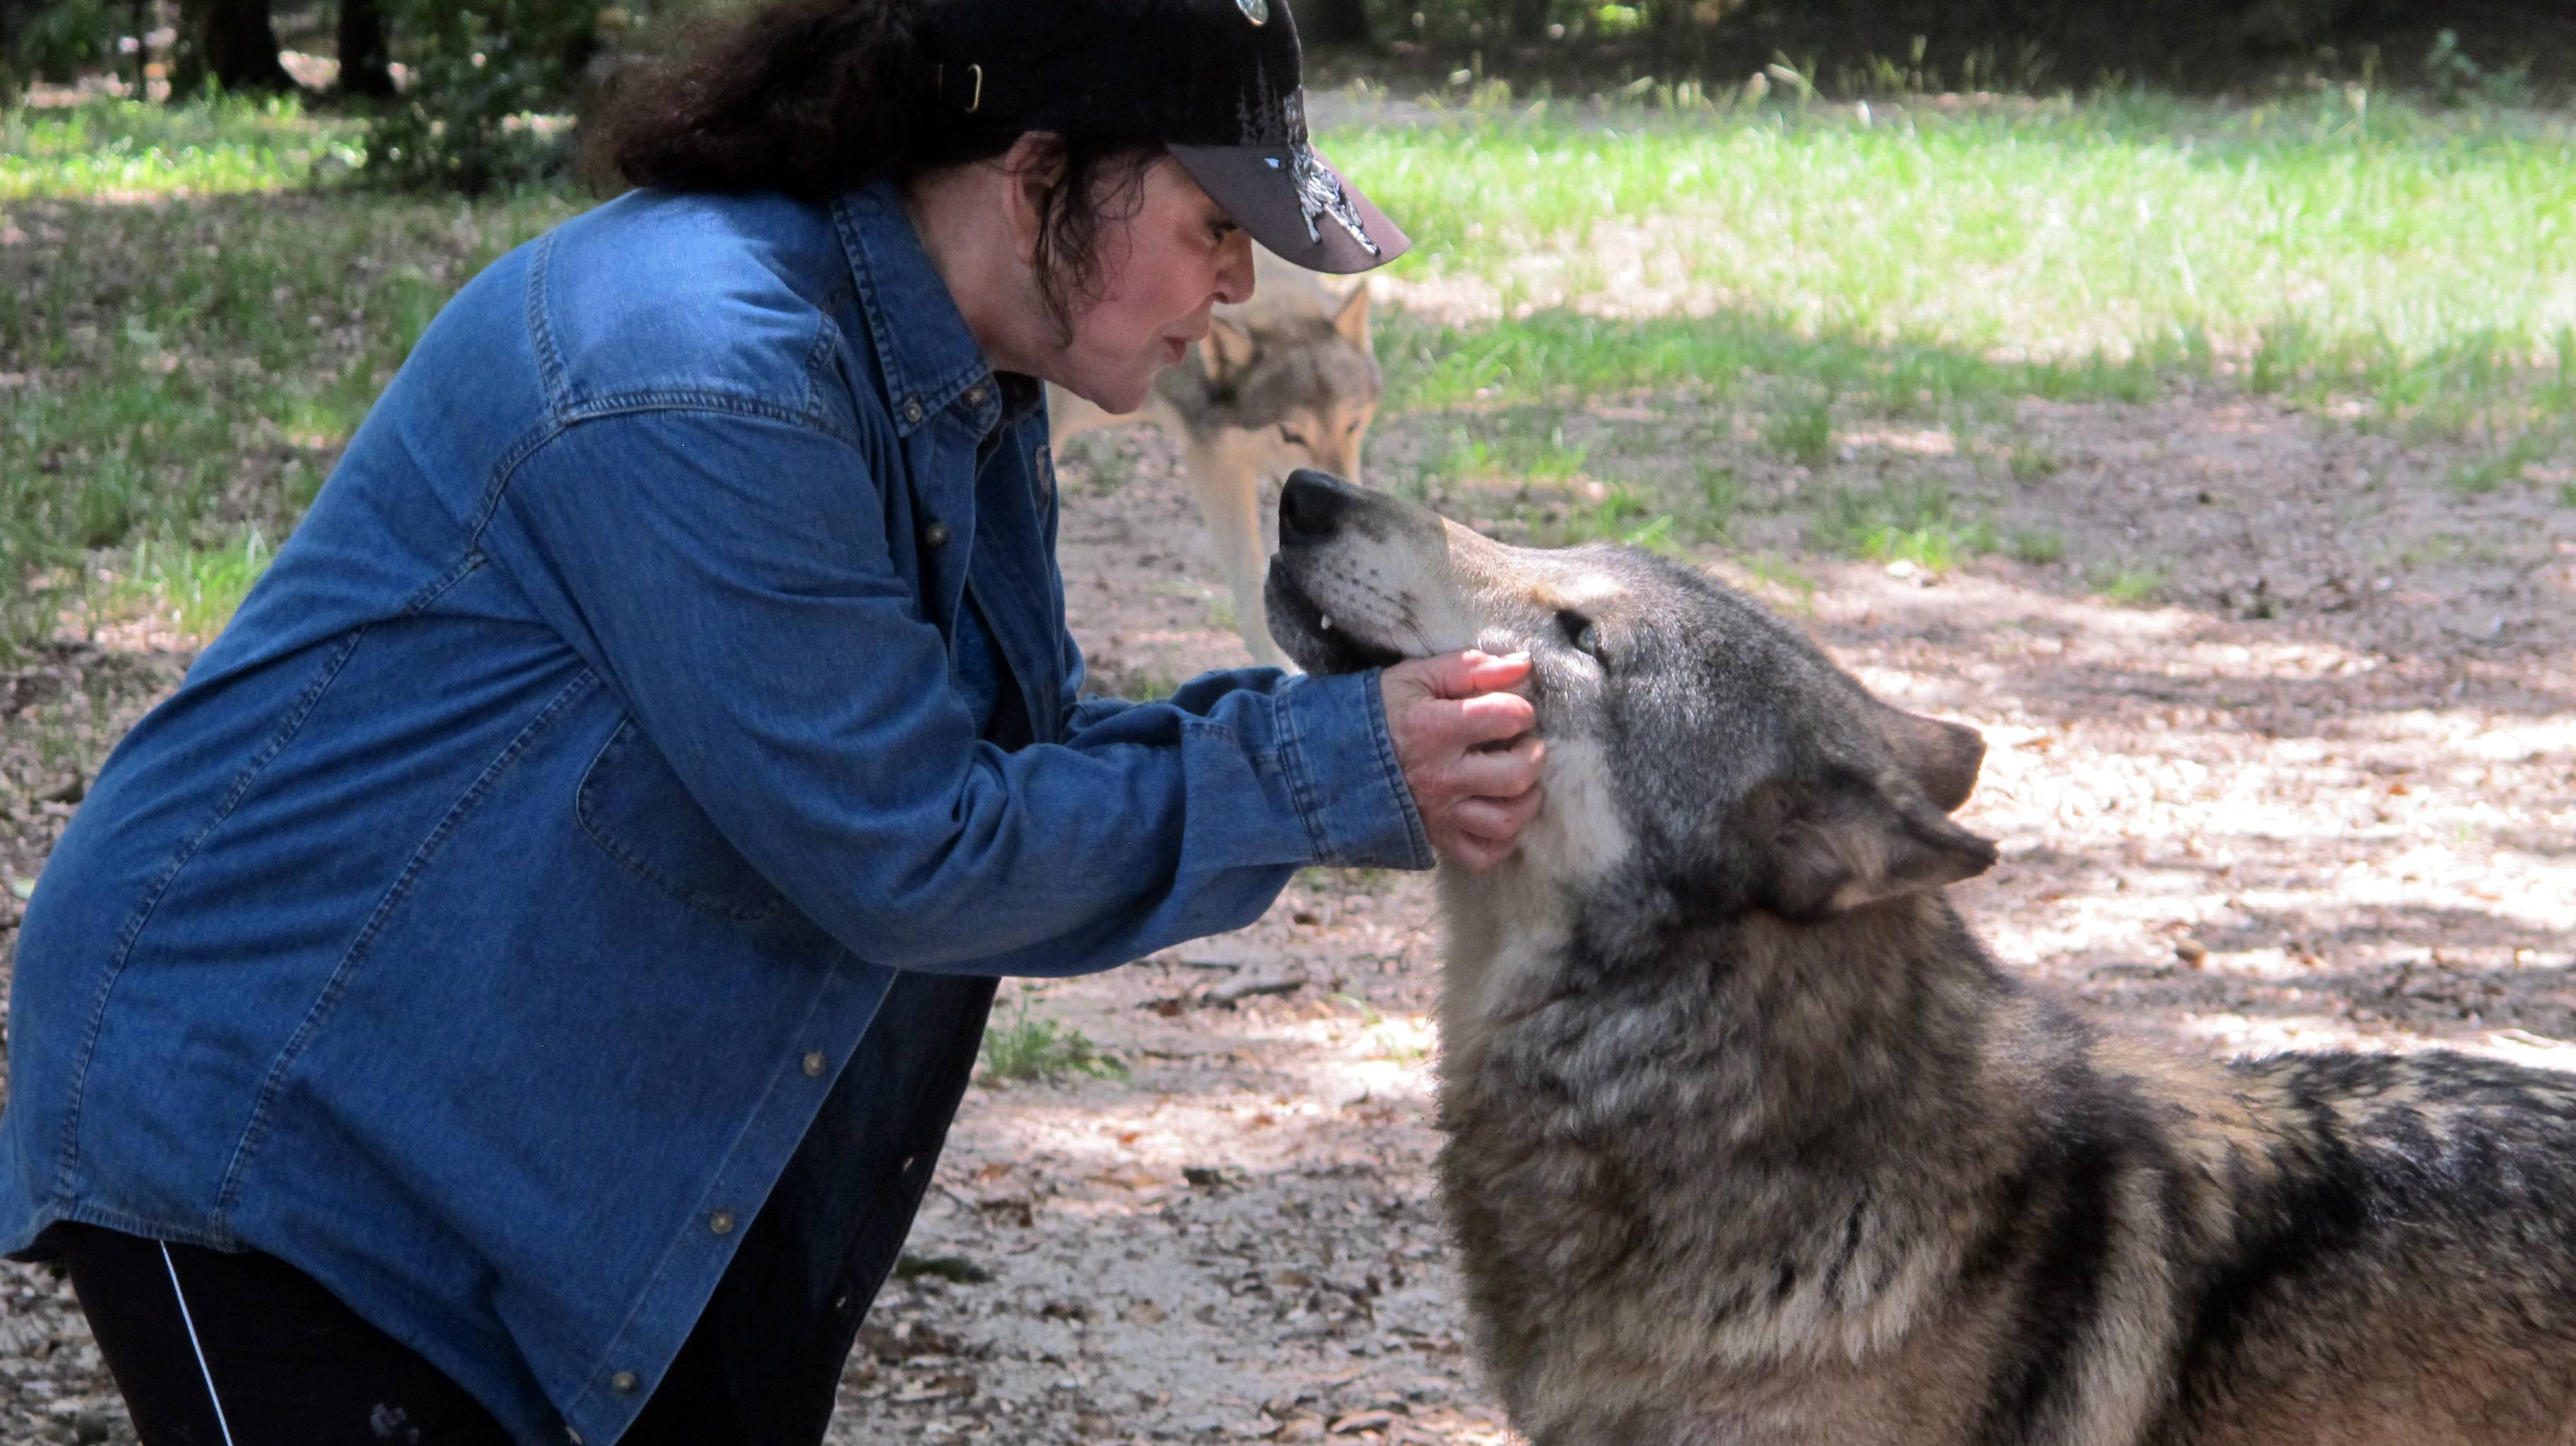 Founder Cynthia Watkins kisses a wolf inside the Seacrest Wolf Preserve in Chipley, Florida. The 450-acre preserve is home to 30 gray, Arctic and British Columbian wolves. It is the largest wolf preserve in the Southeastern United States.